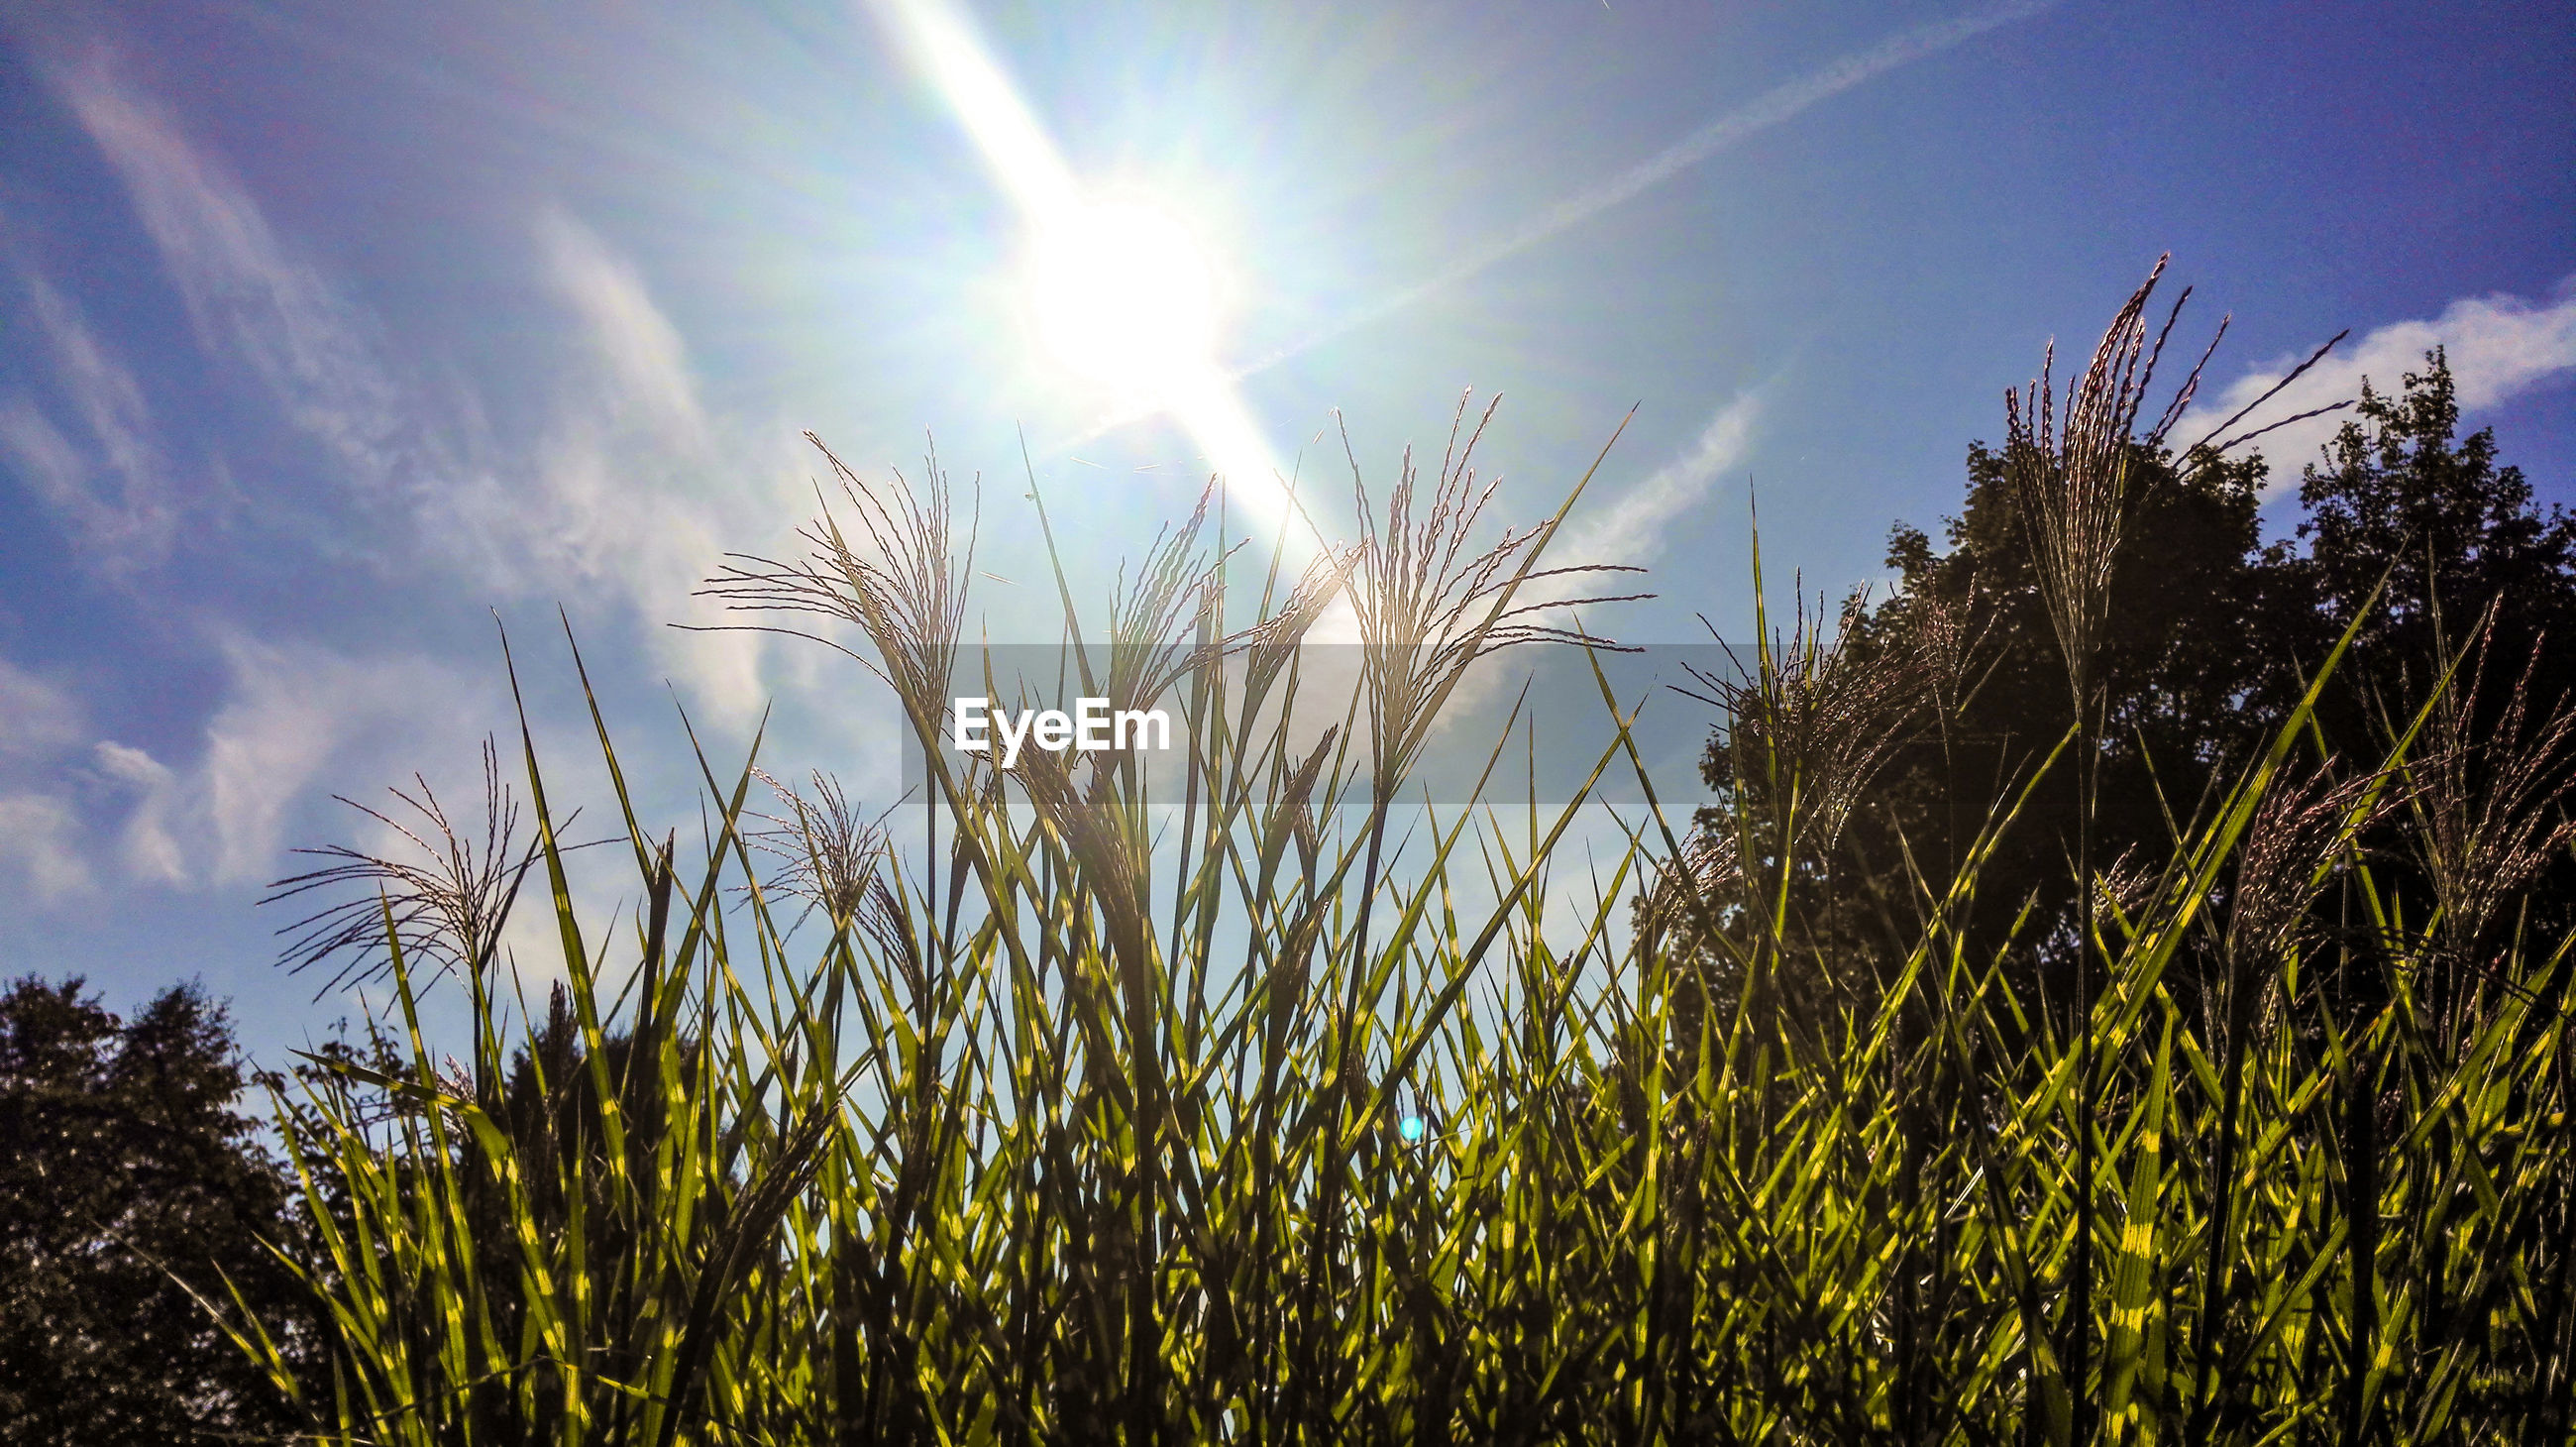 LOW ANGLE VIEW OF PLANTS GROWING ON FIELD AGAINST BRIGHT SKY